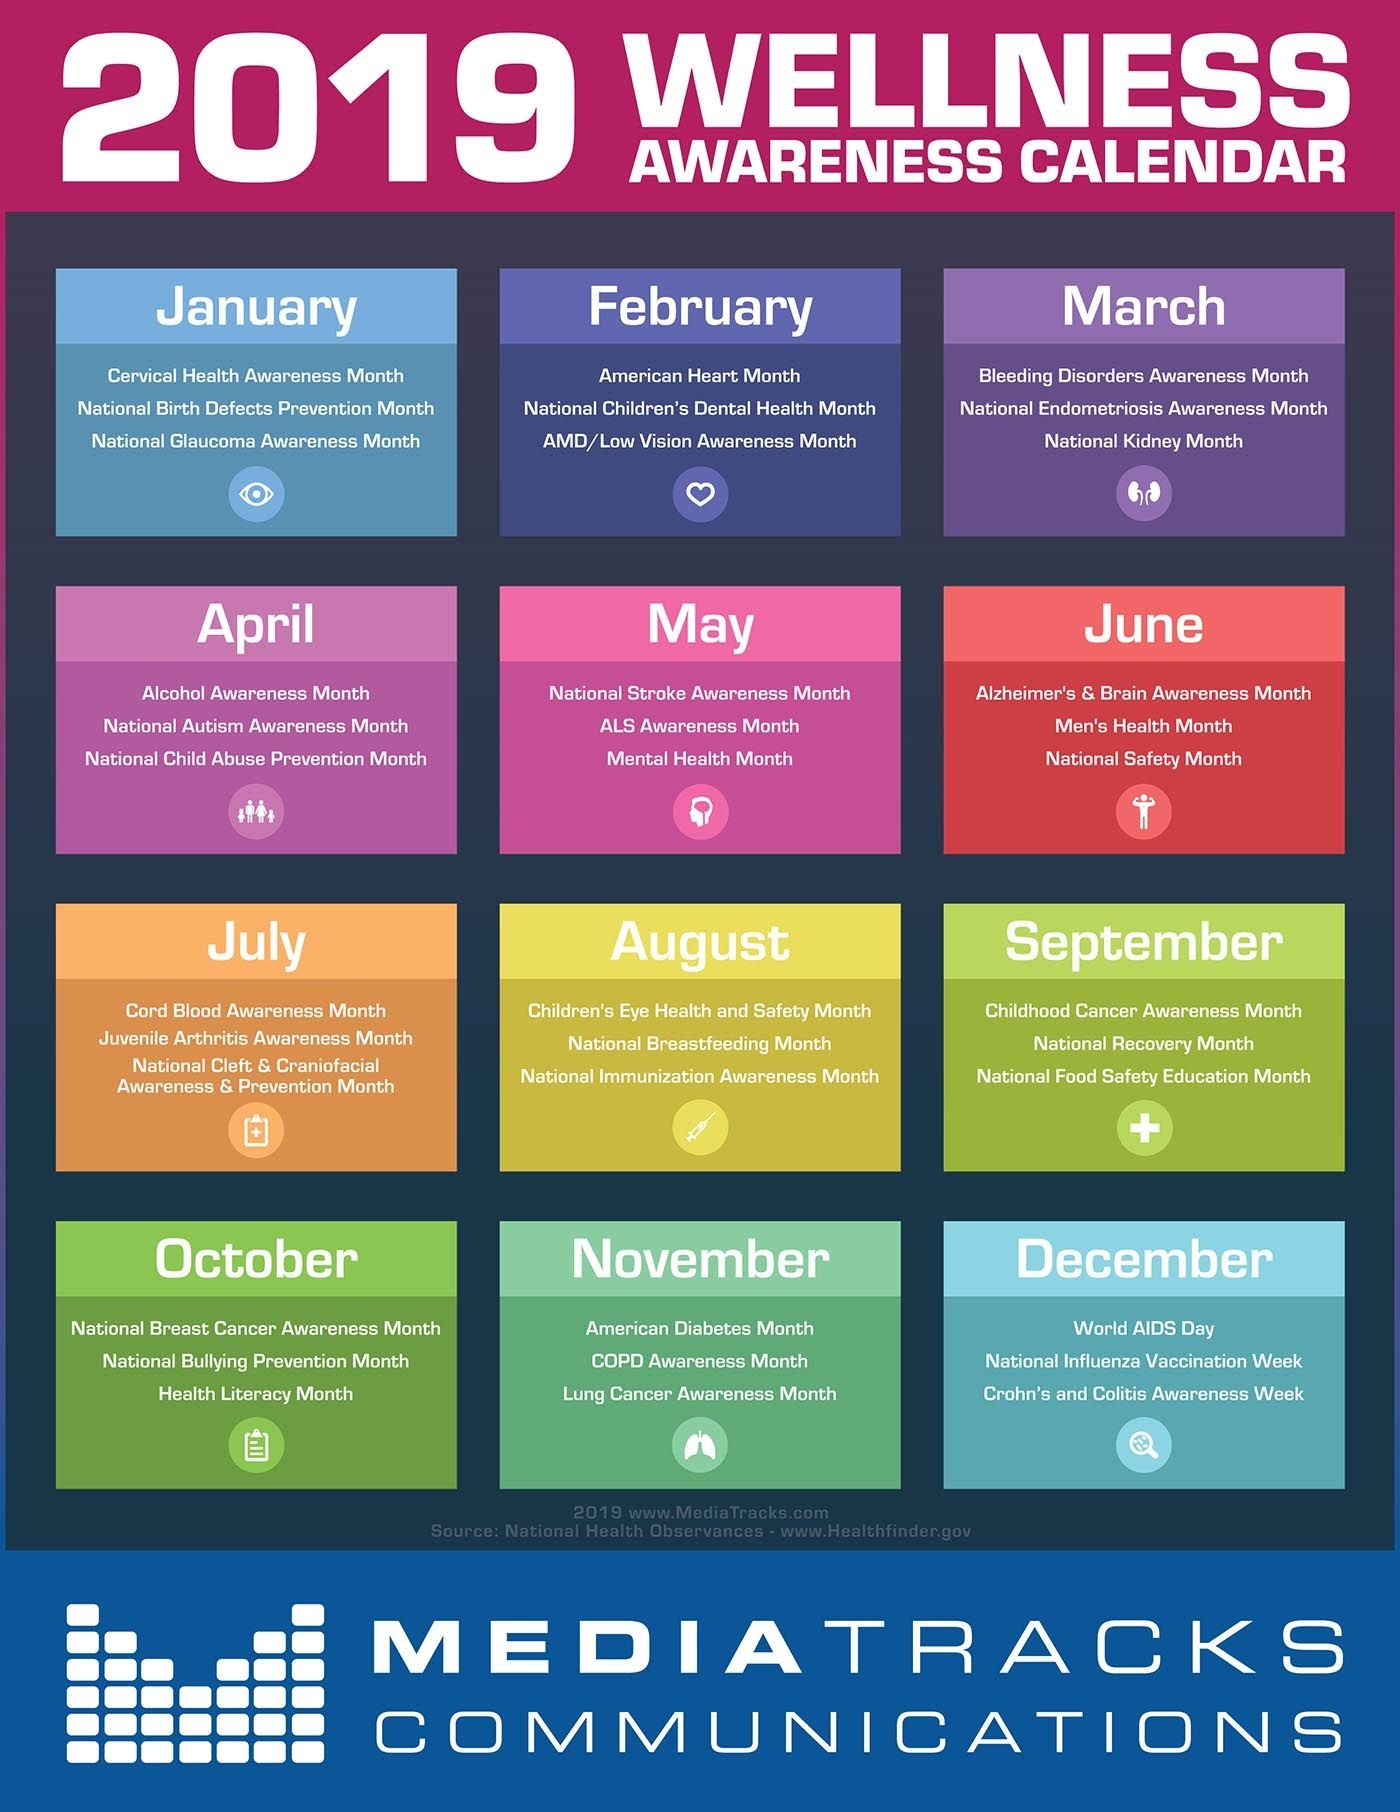 2019 Health & Wellness Awareness Calendar [infographic